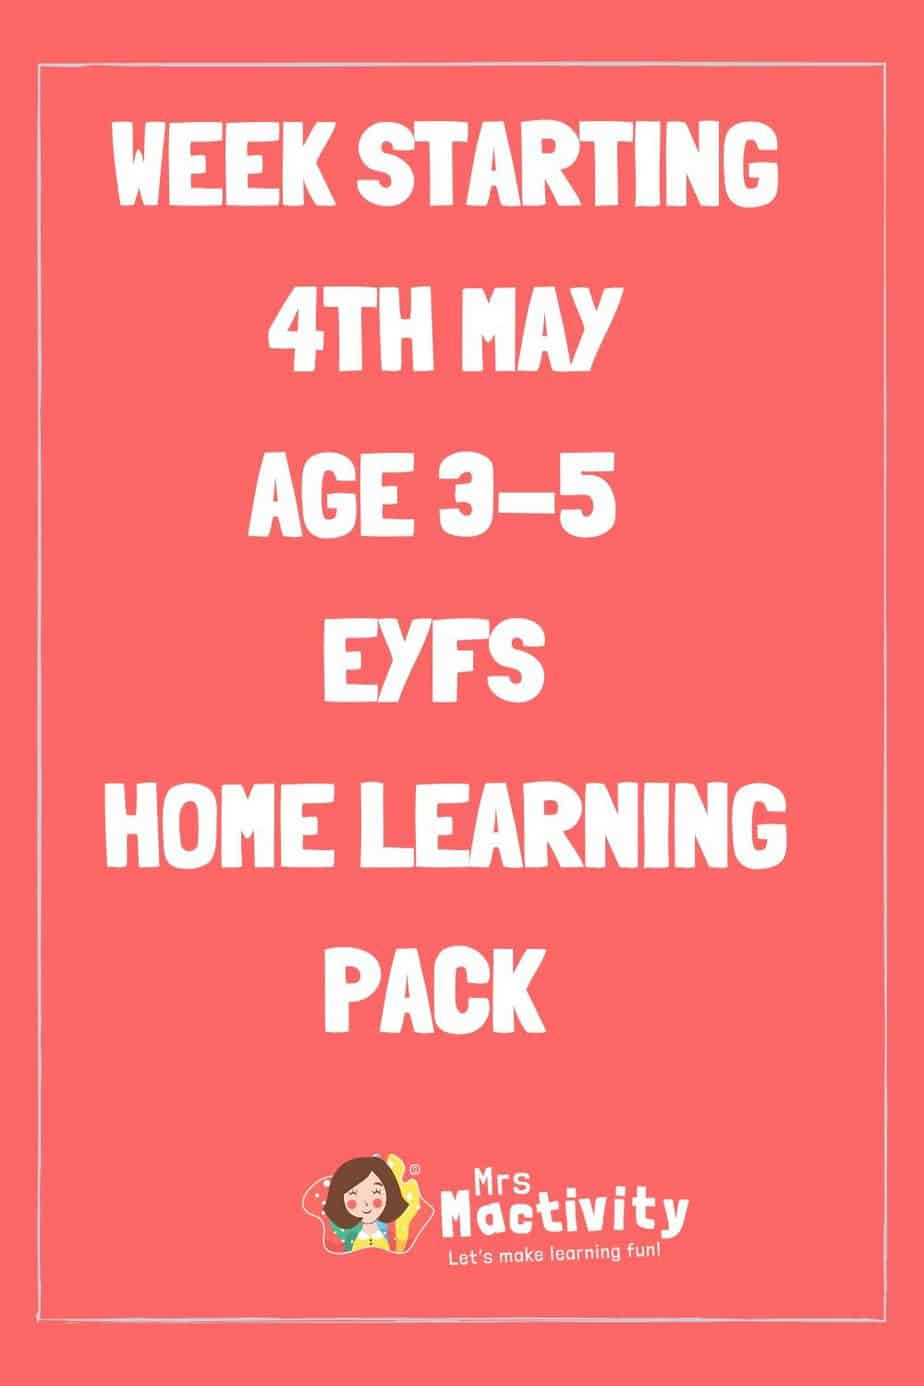 4th May Early Years (Age 3-5) Weekly Home Learning Pack